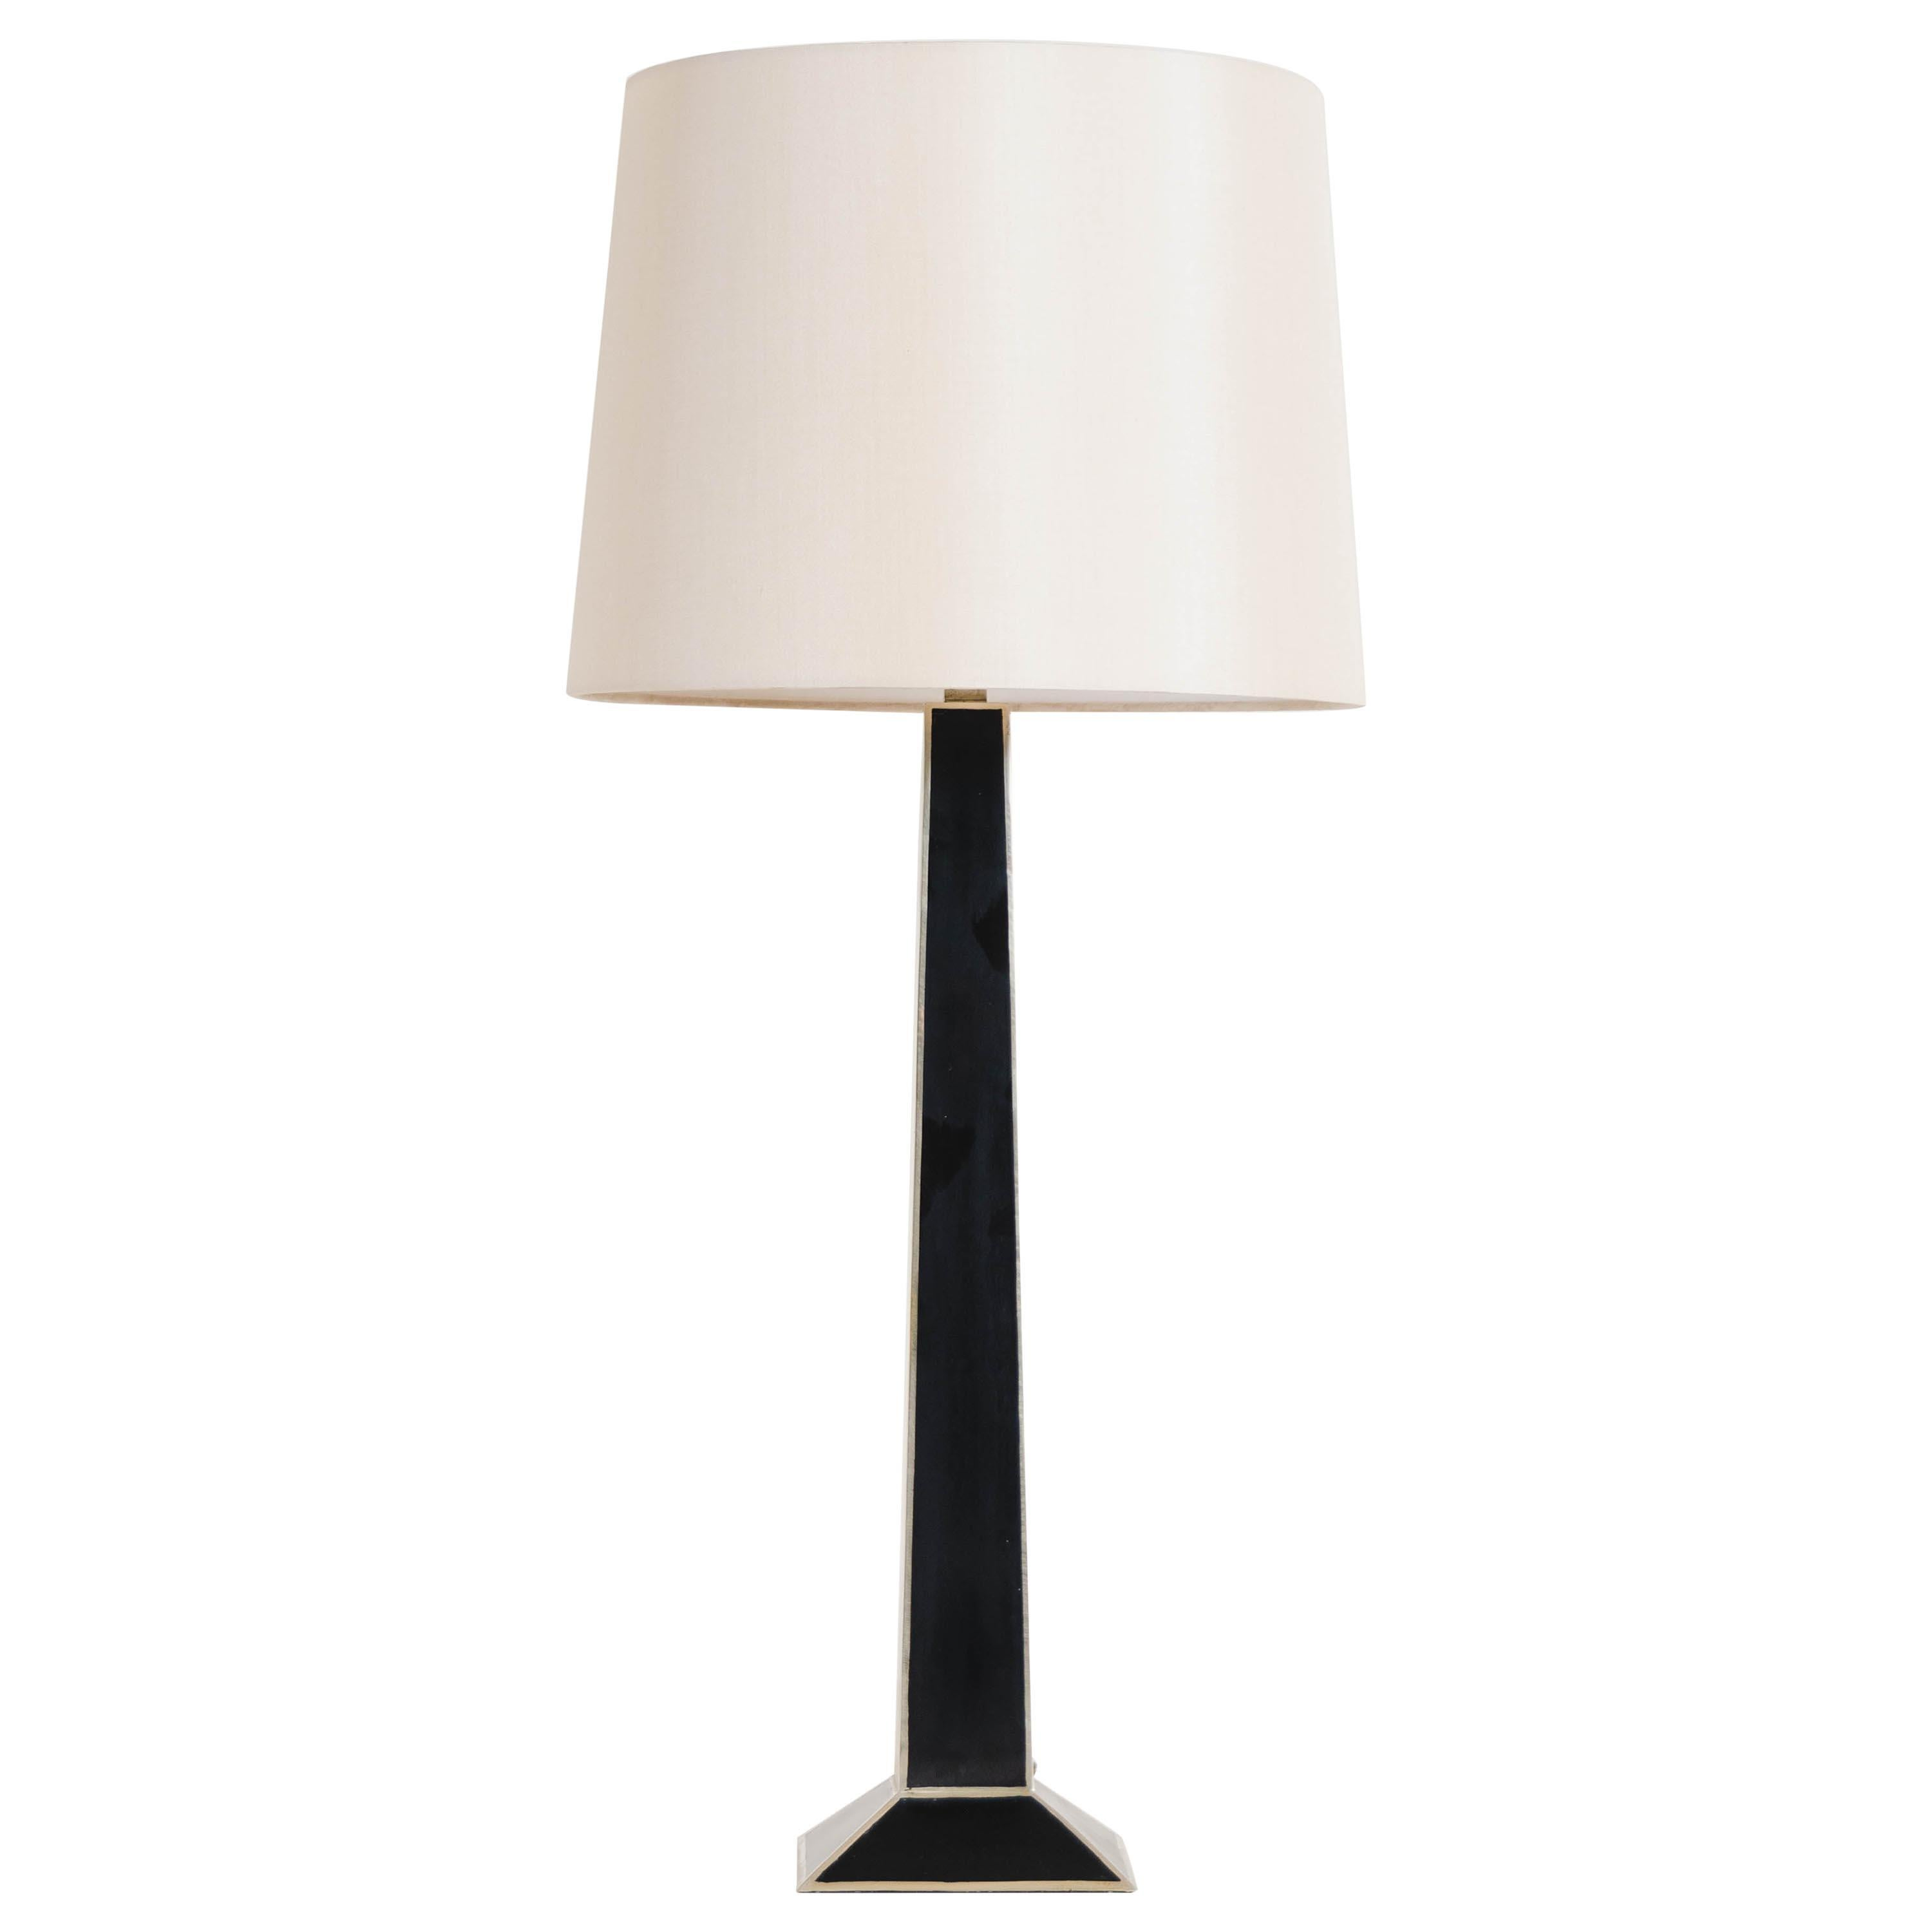 Black Lacquer Obelisk Table Lamp w/ White Bronze by Robert Kuo, Limited Edition